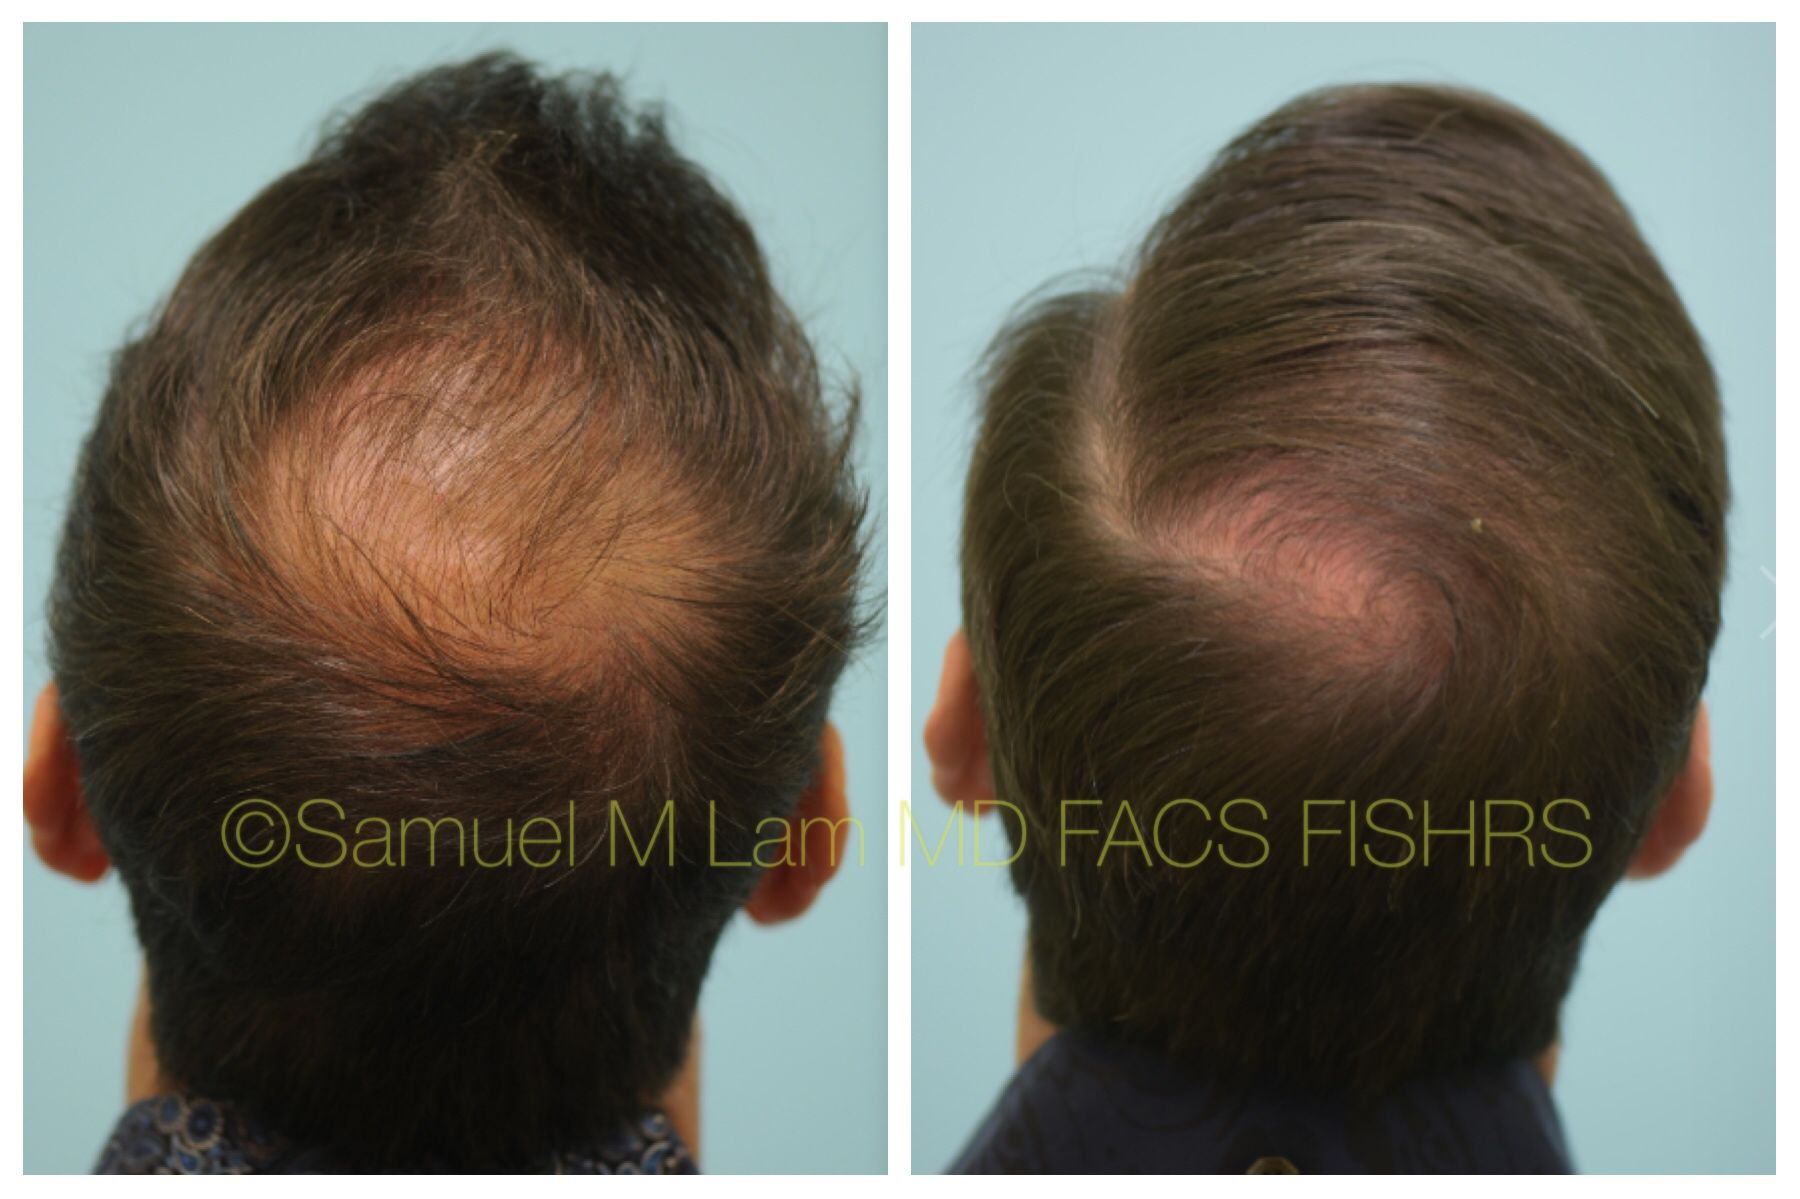 This Gentleman Had Ual Side Effects From Propecia And Was On Only Rogaine Minoxidil Before He Is Shown 5 Months After Starting Topical